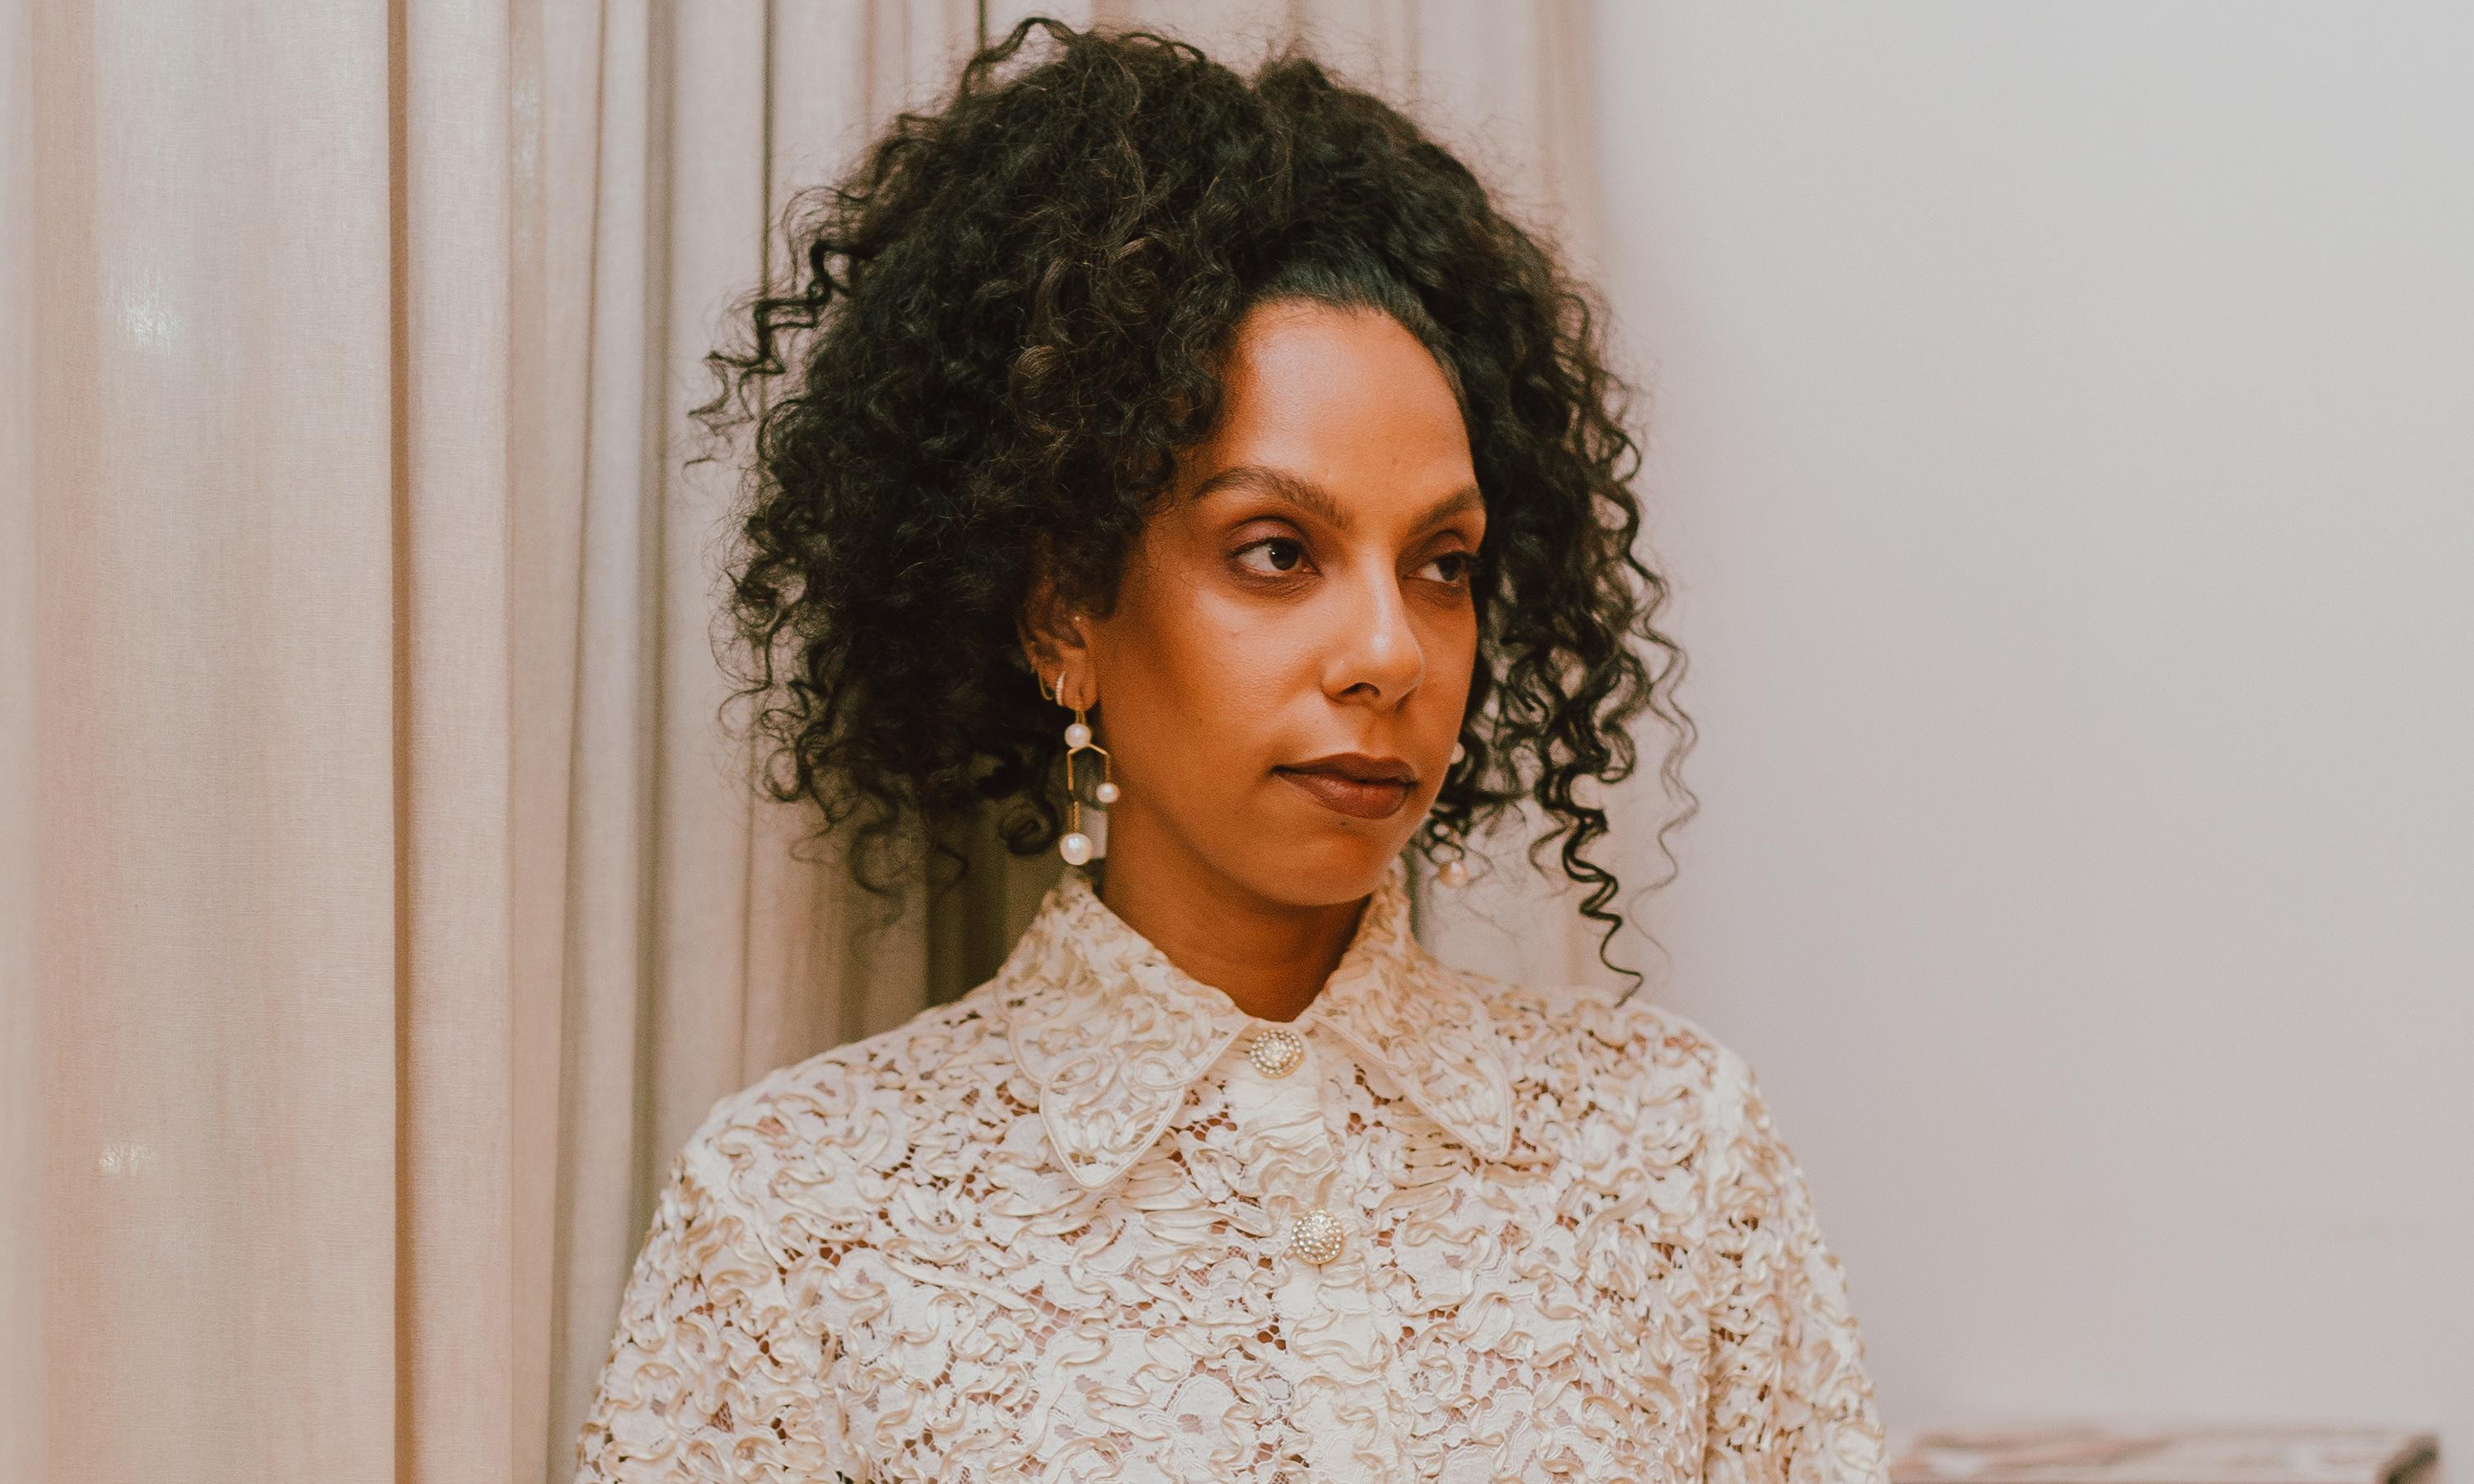 Melina Matsoukas: 'I didn't grow up seeing dark-skinned people fall in love on screen'